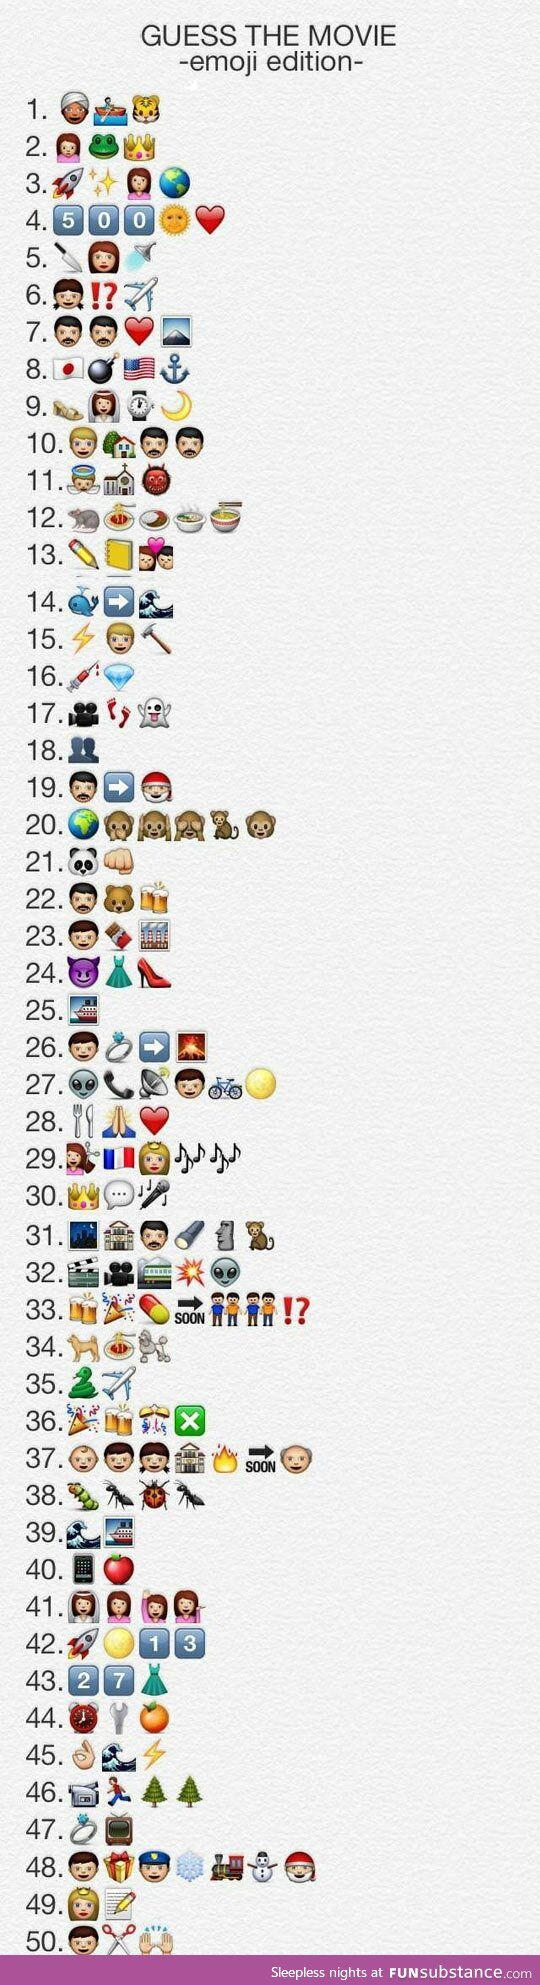 Guess the emoji movie                                                                                                                                                                                 More